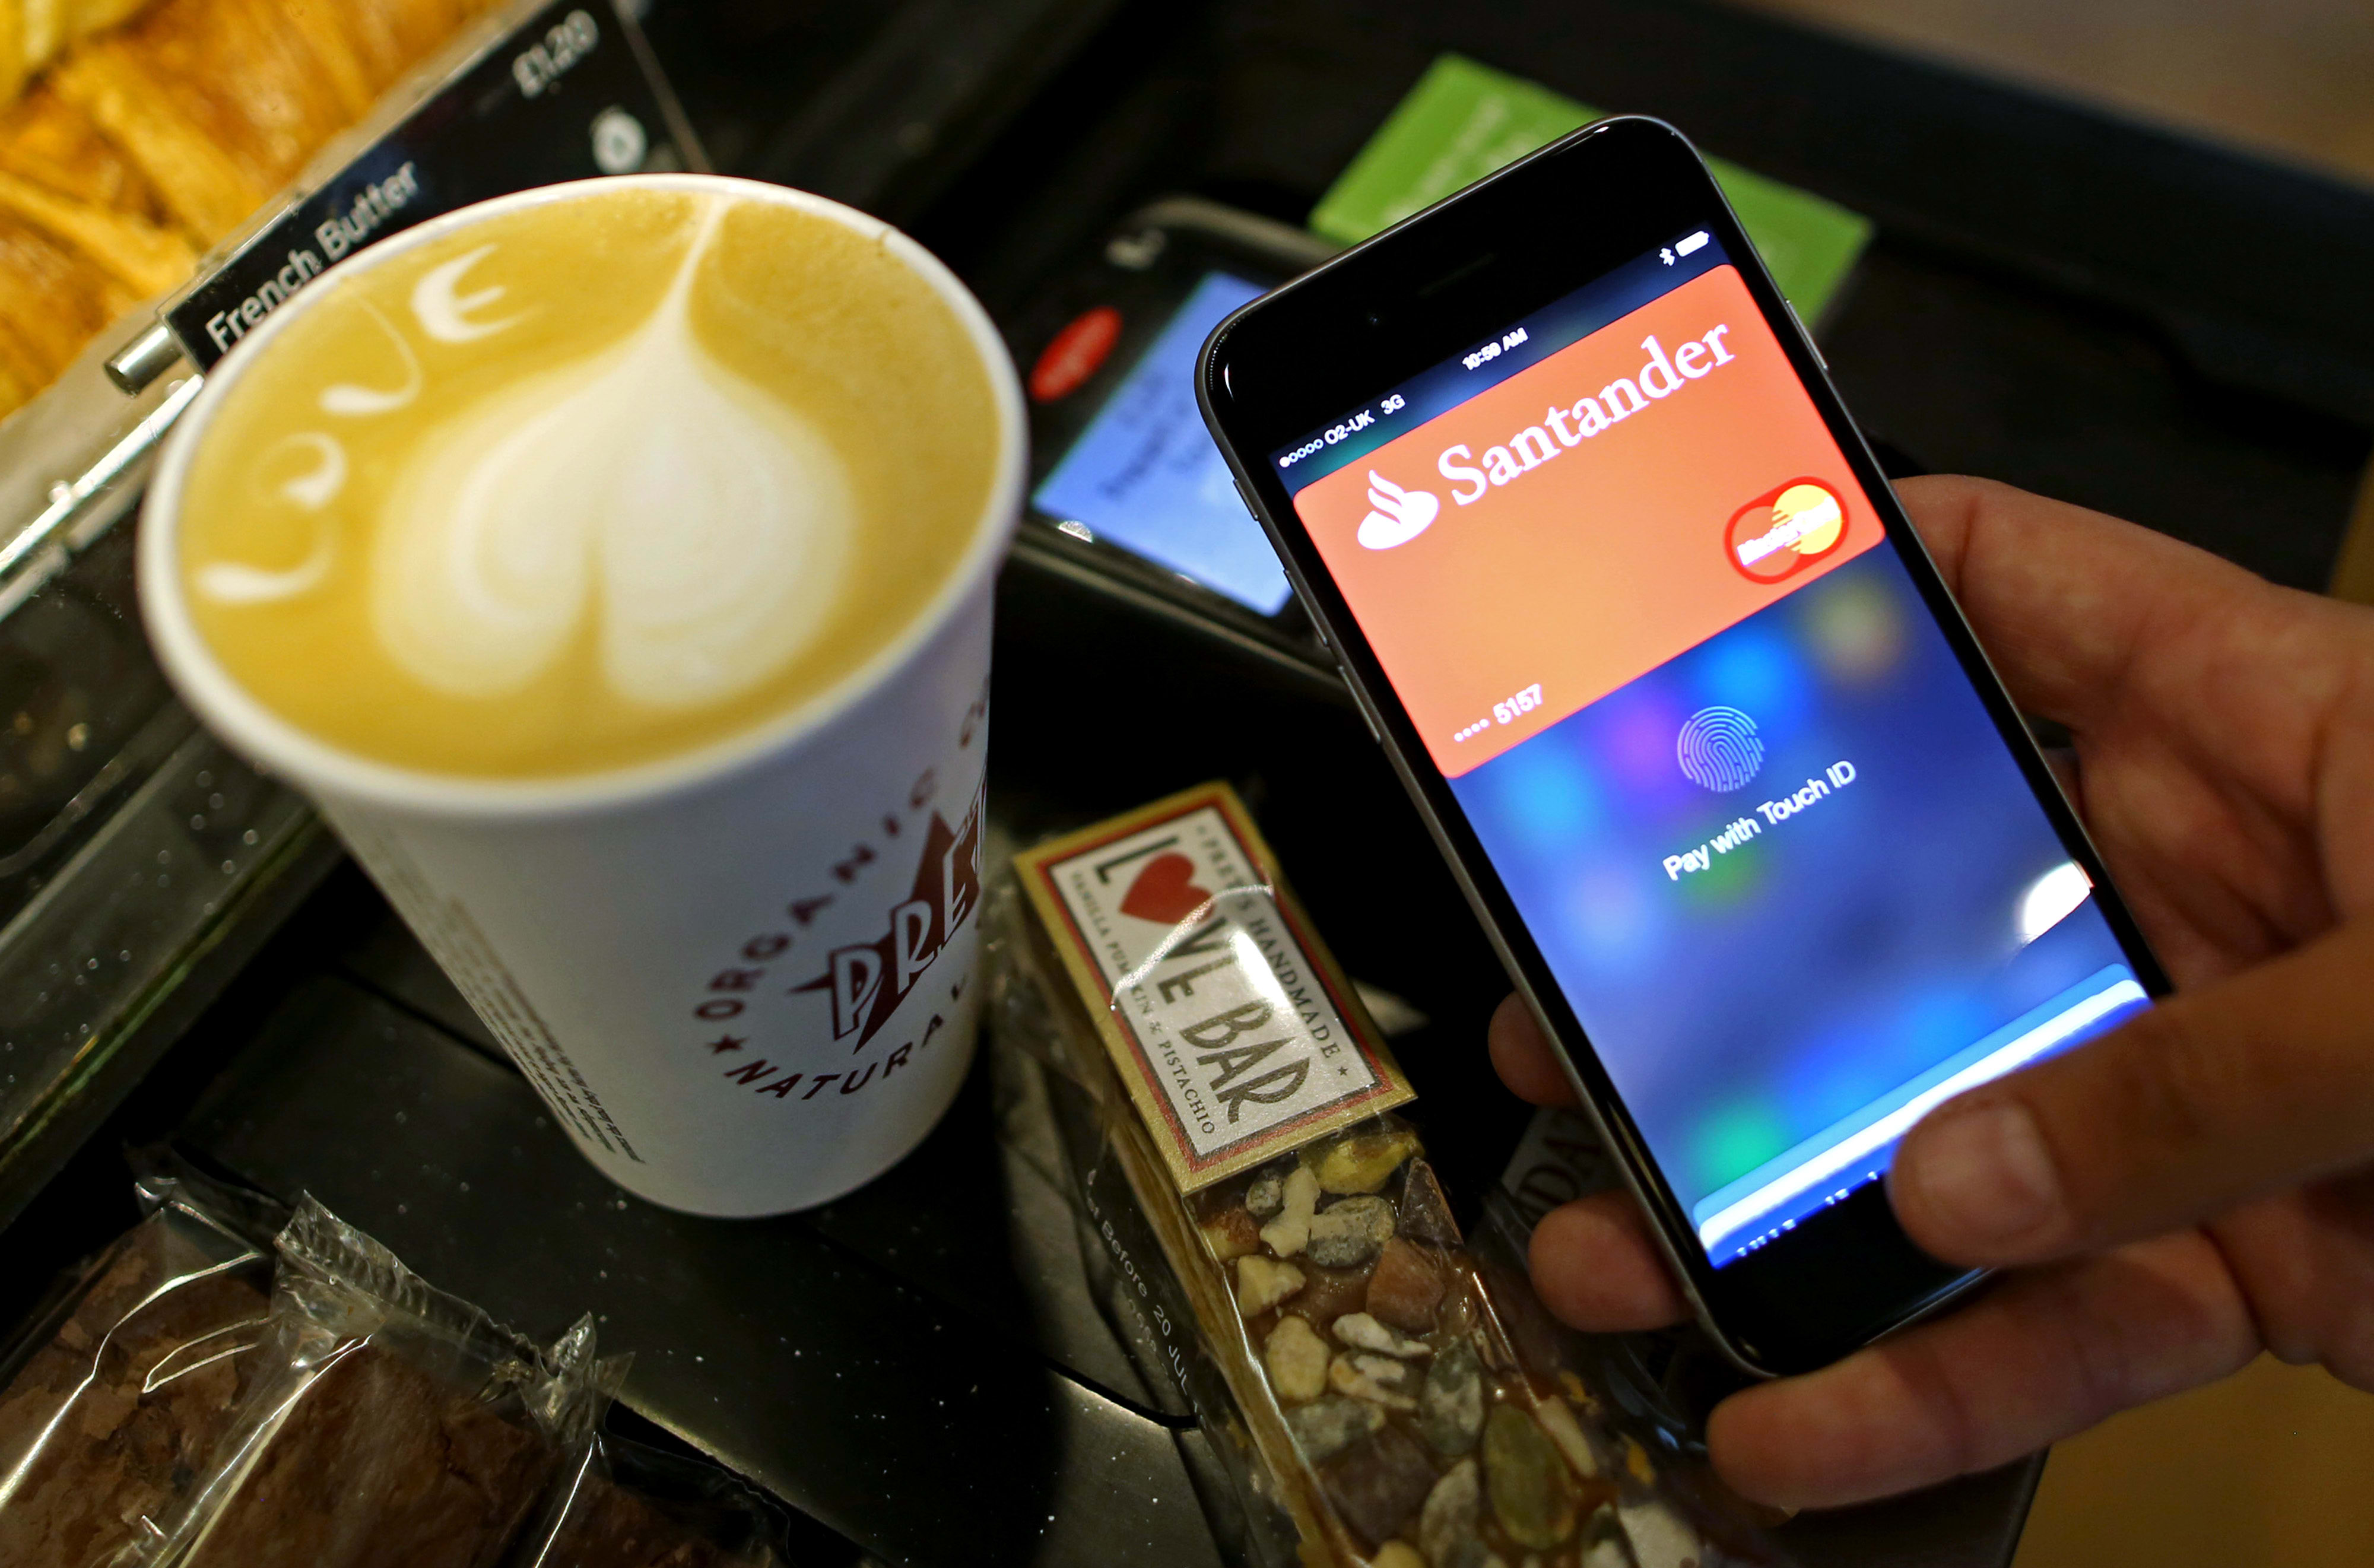 Why mobile payments have barely caught on in the U.S.